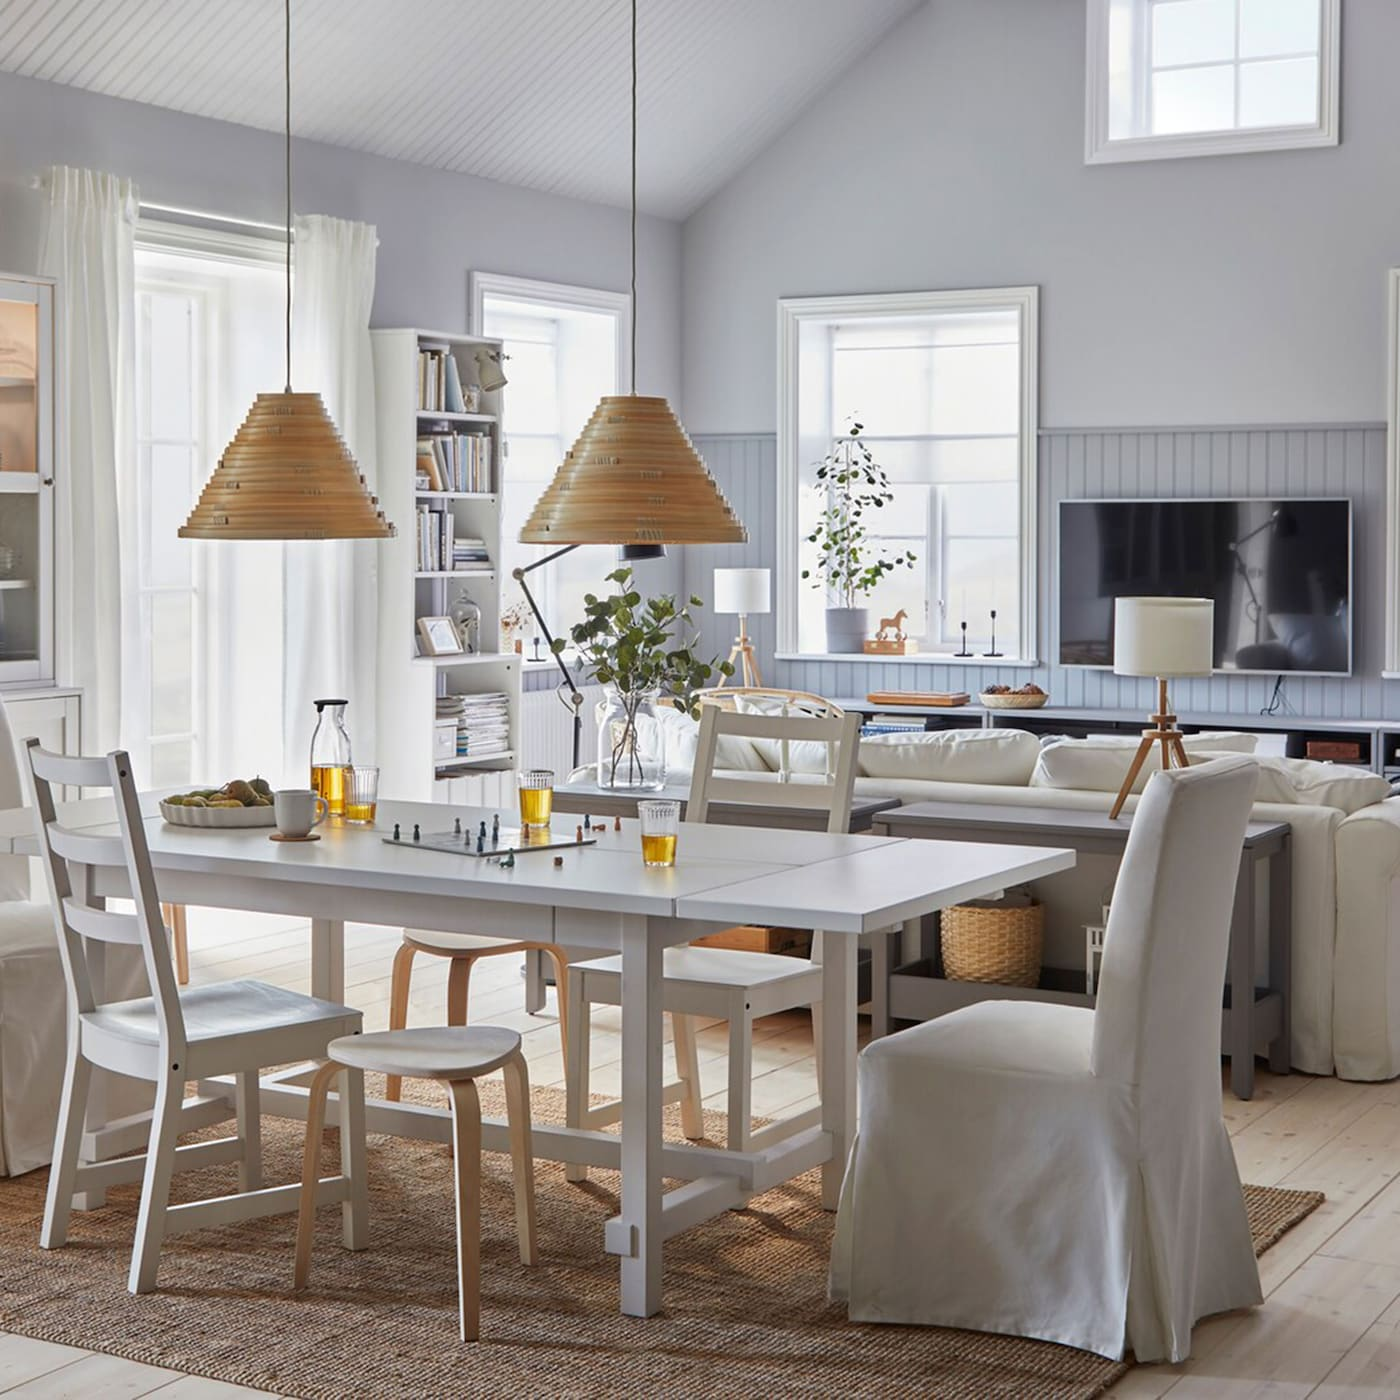 Dining Room Ideas Ikea: A Bright Dining Room Where Dreams Are Shared